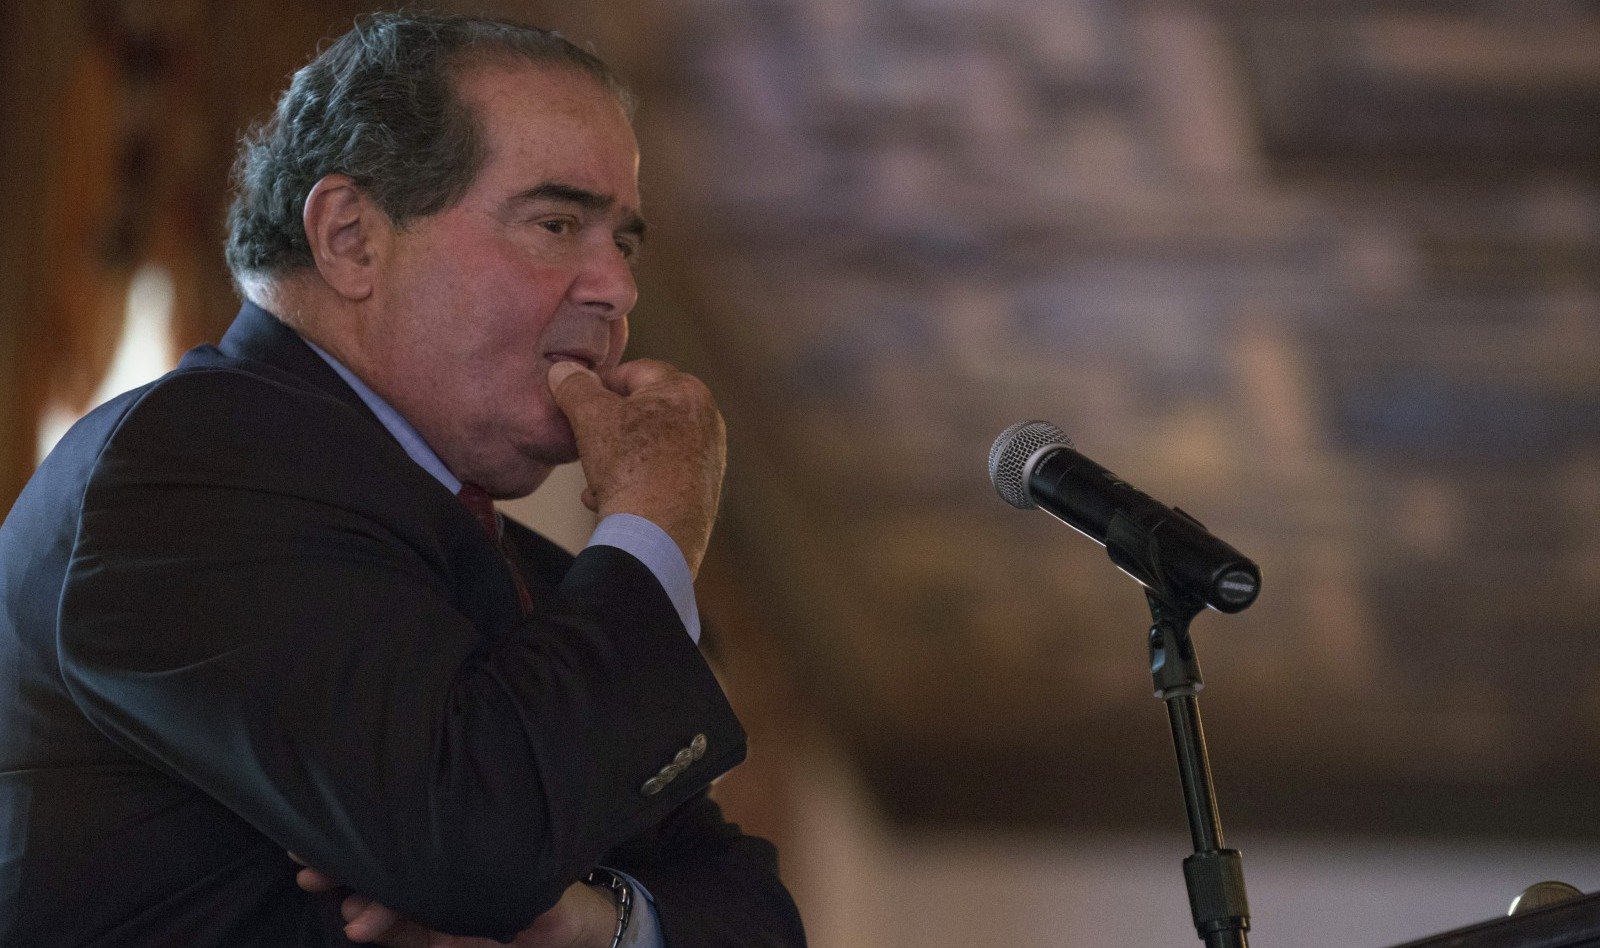 U.S. Supreme Court Justice Antonin Scalia listens to a question after speaking at an event sponsored by the Federalist Society at the New York Athletic Club in New York October 13, 2014. REUTERS/Darren Ornitz (UNITED STATES - Tags: CRIME LAW) - RTR4A1D9